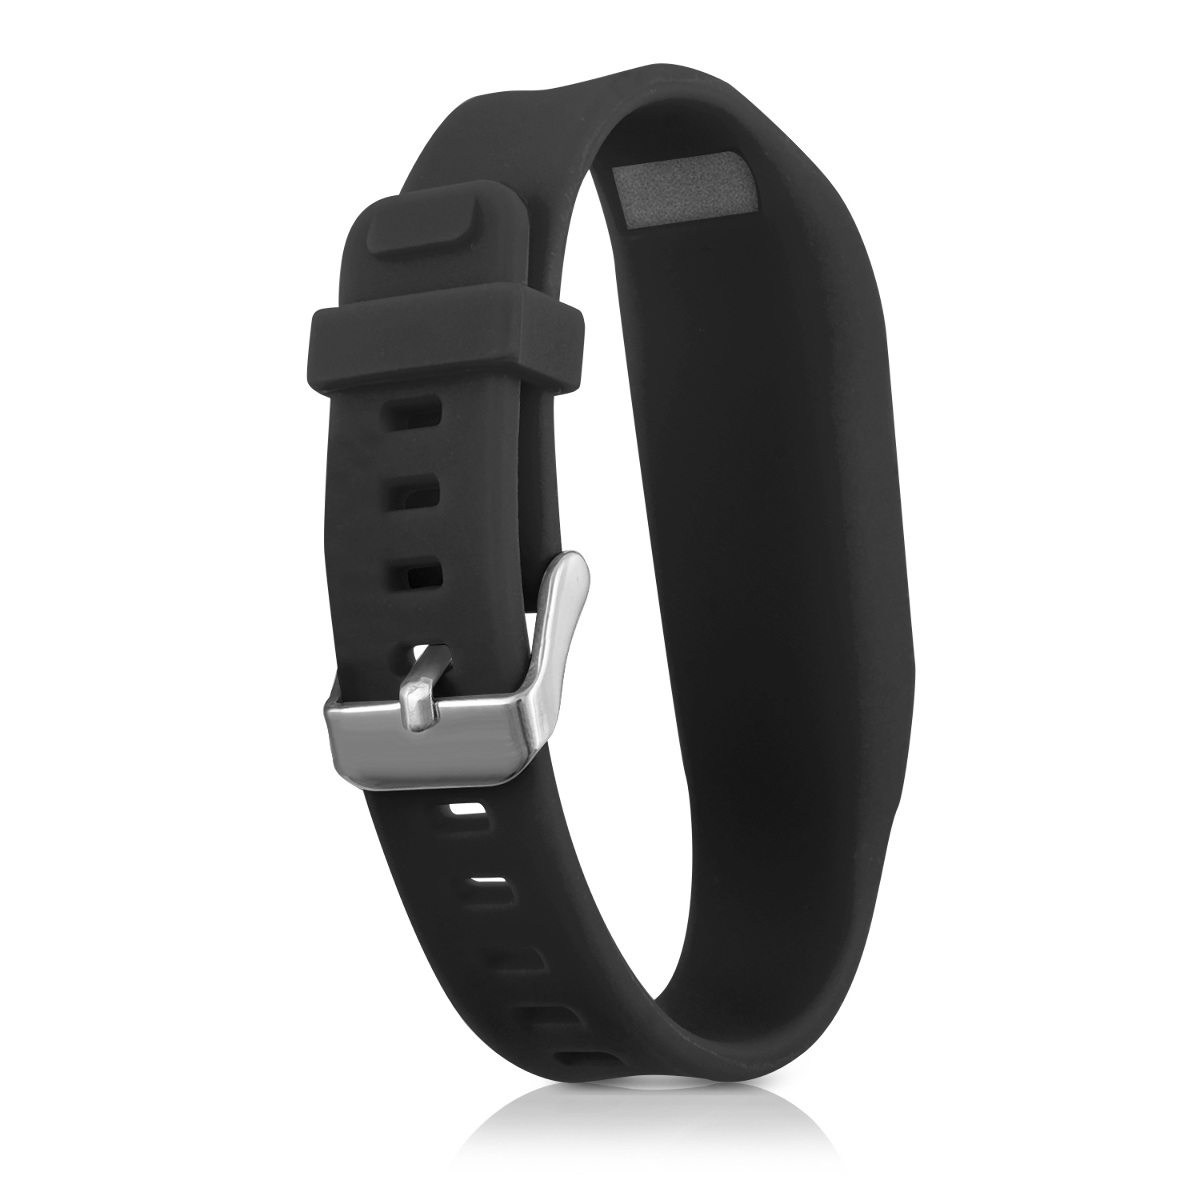 Kwmobile 2x silicone spare bracelet for fitbit one fitness clock clasp flexible ebay - Spare time gadgets ...